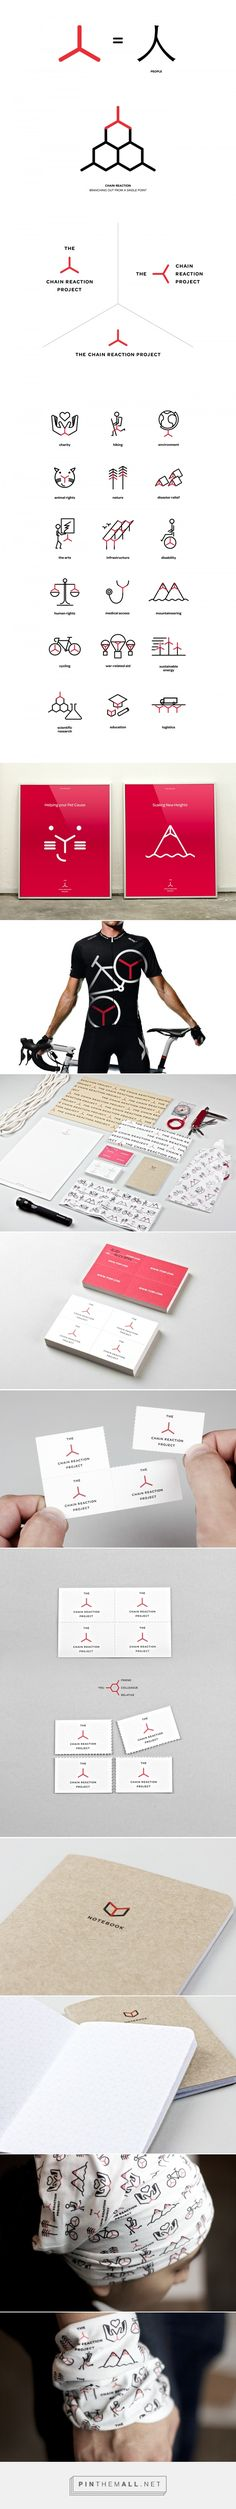 The Chain Reaction Project on Behance... - a grouped images picture - Pin Them All